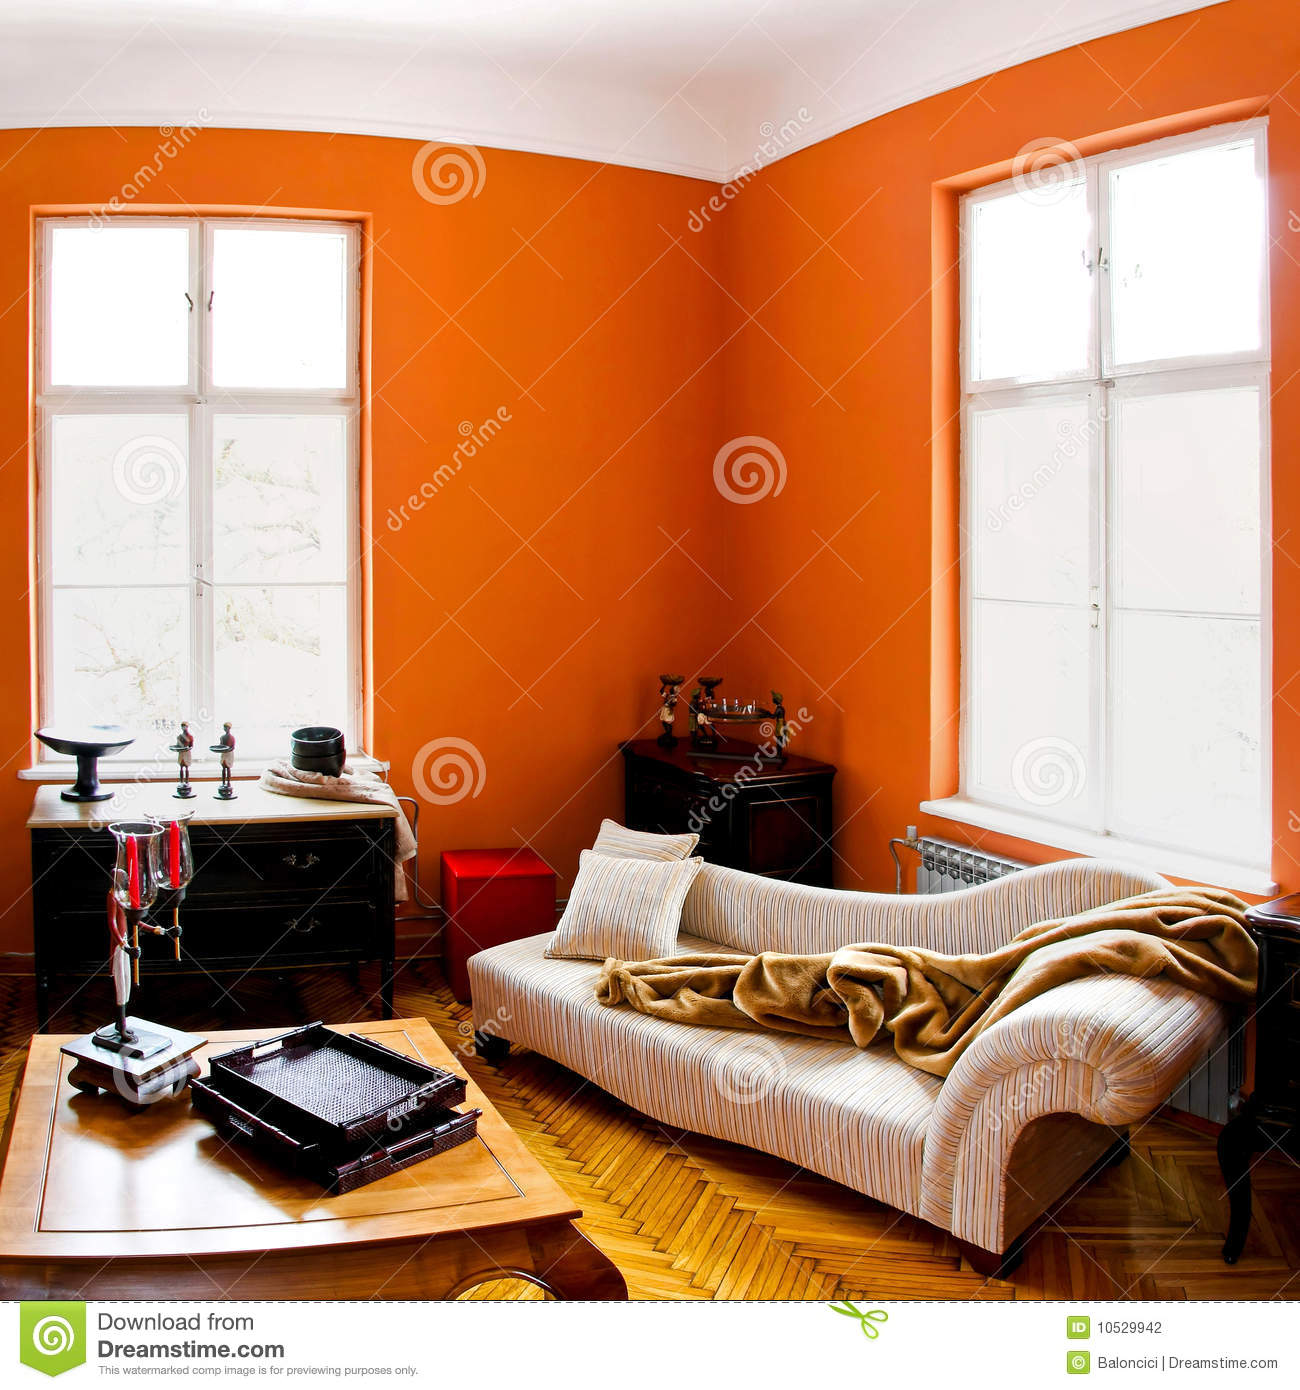 orange raum stockfotografie bild 10529942. Black Bedroom Furniture Sets. Home Design Ideas